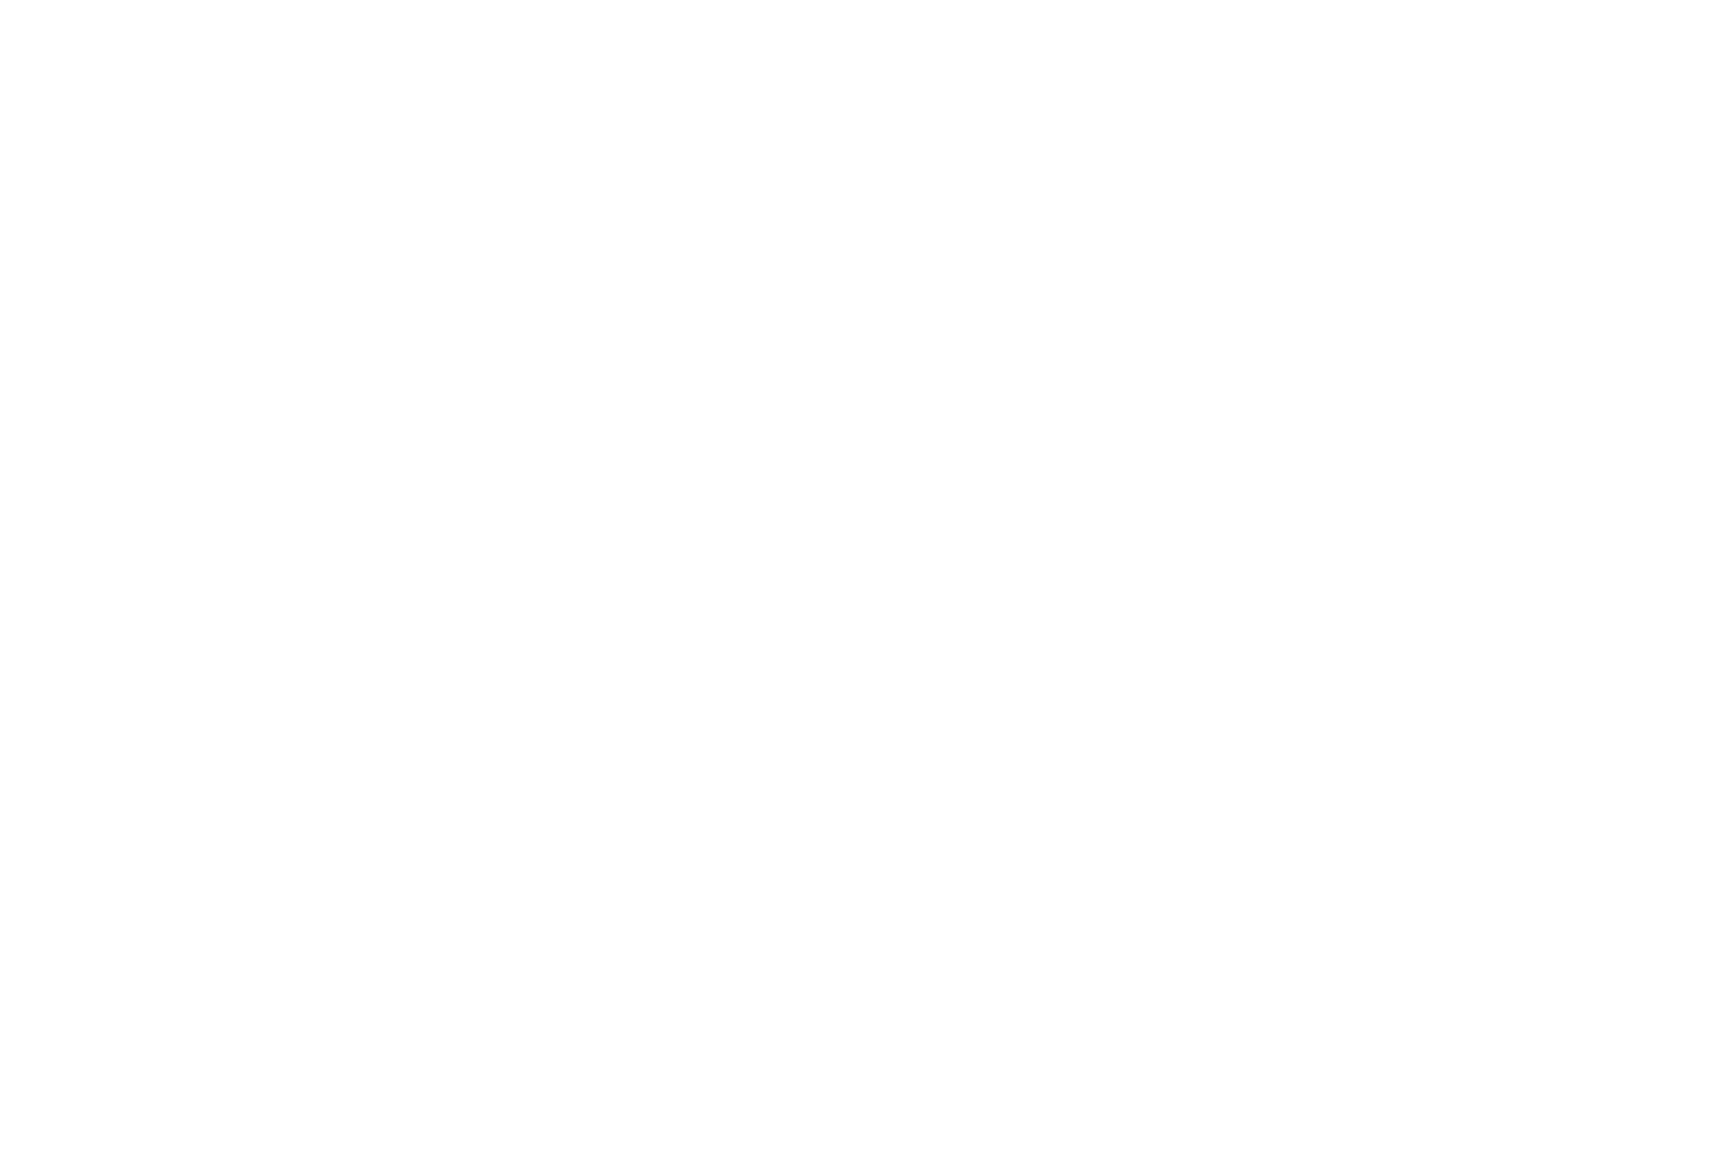 OFFICIAL SELECTION - Hang on to Your Shorts Film Festival - 2020